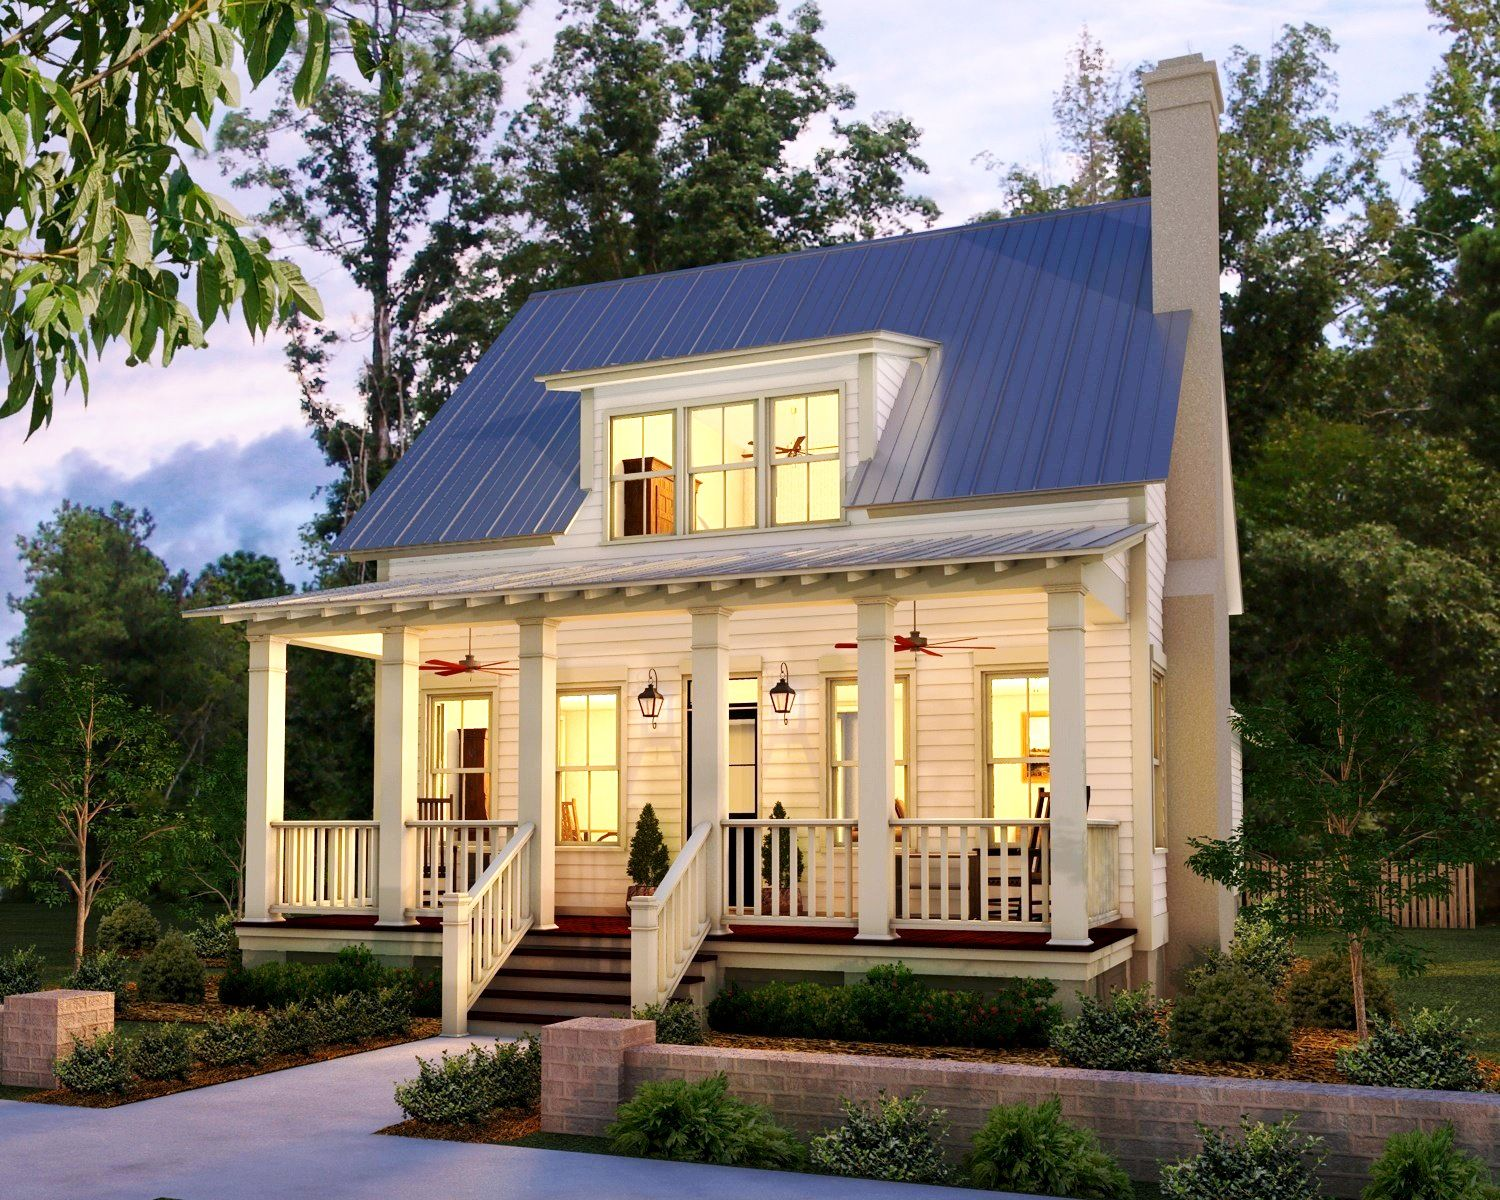 Saluda river club collection of homes columbia sc for House plans for small houses cottage style